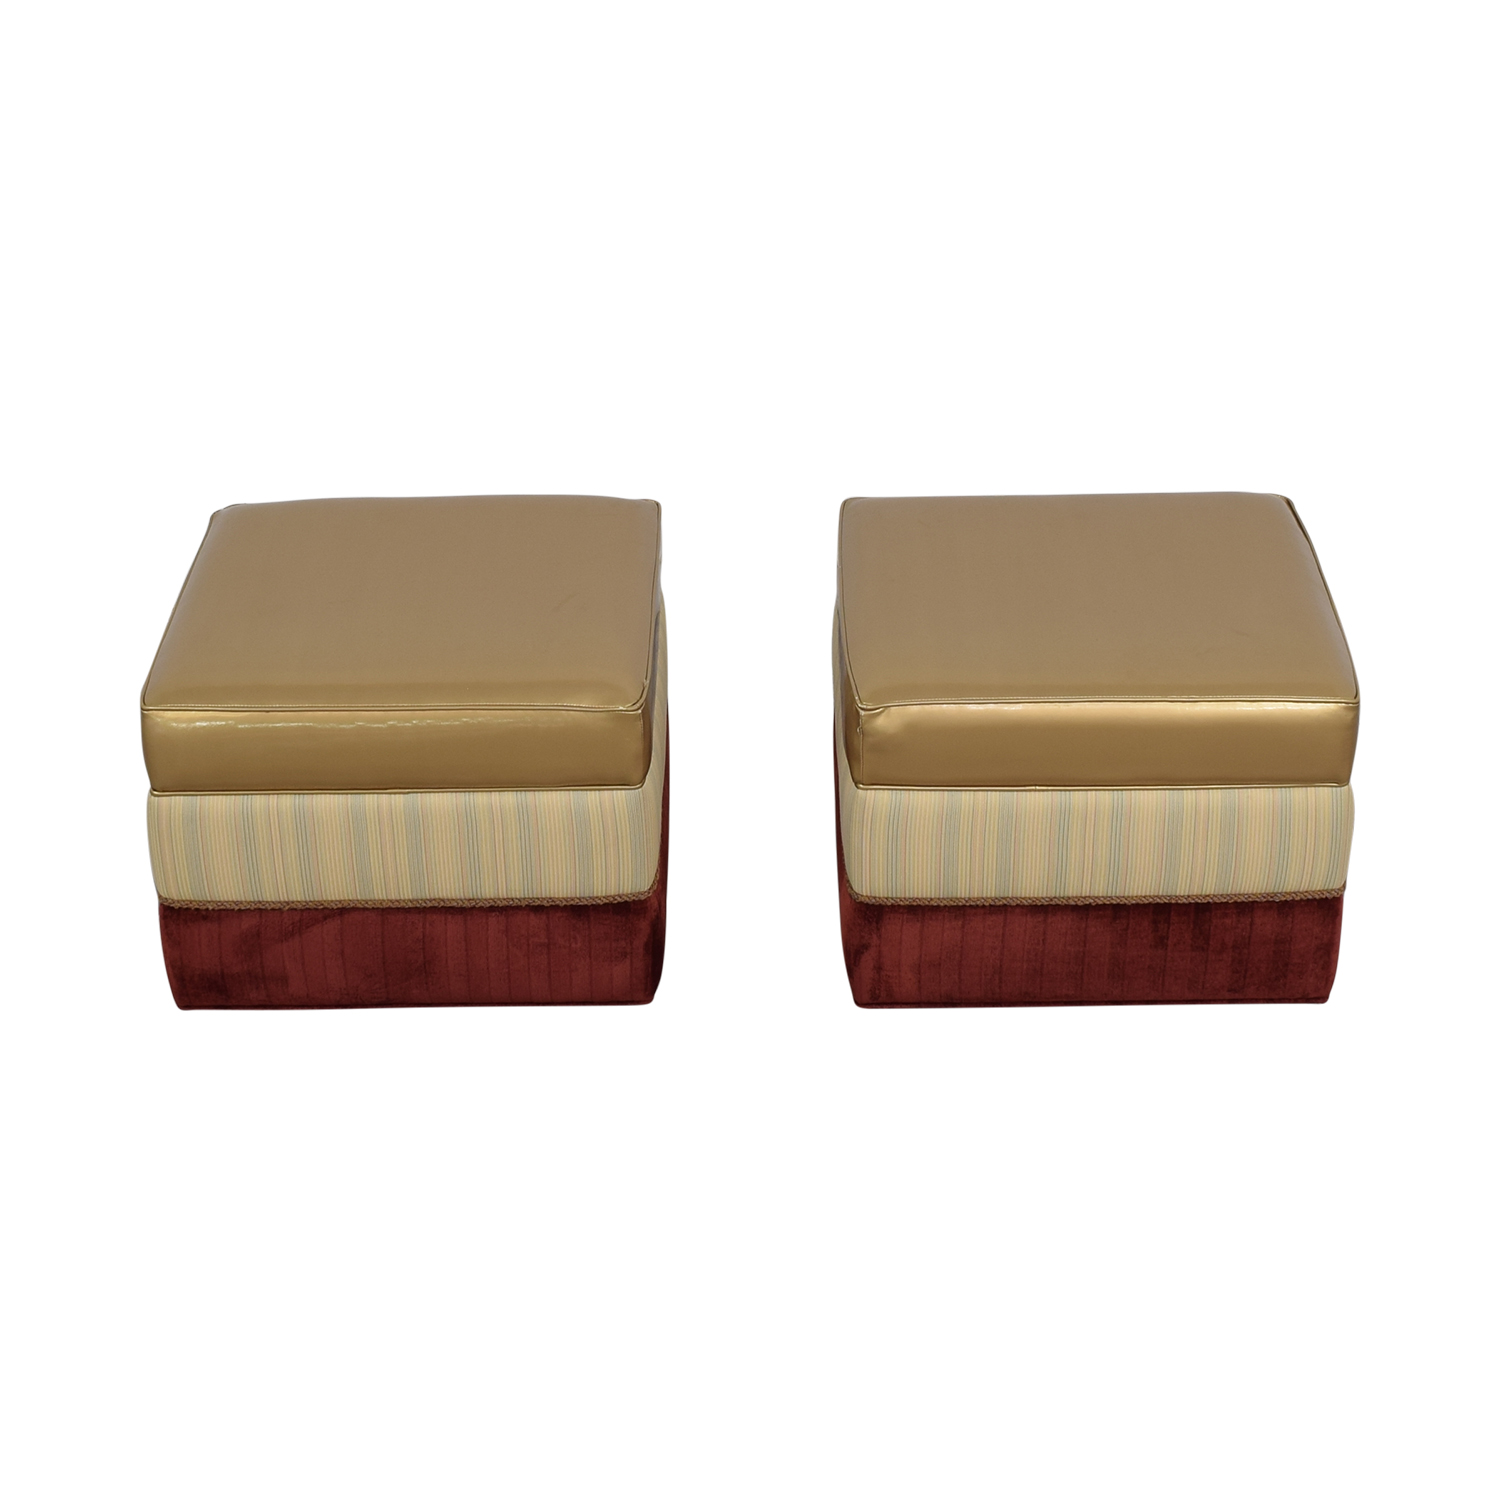 Vanguard Furniture Vanguard Personalized Ottomans nj